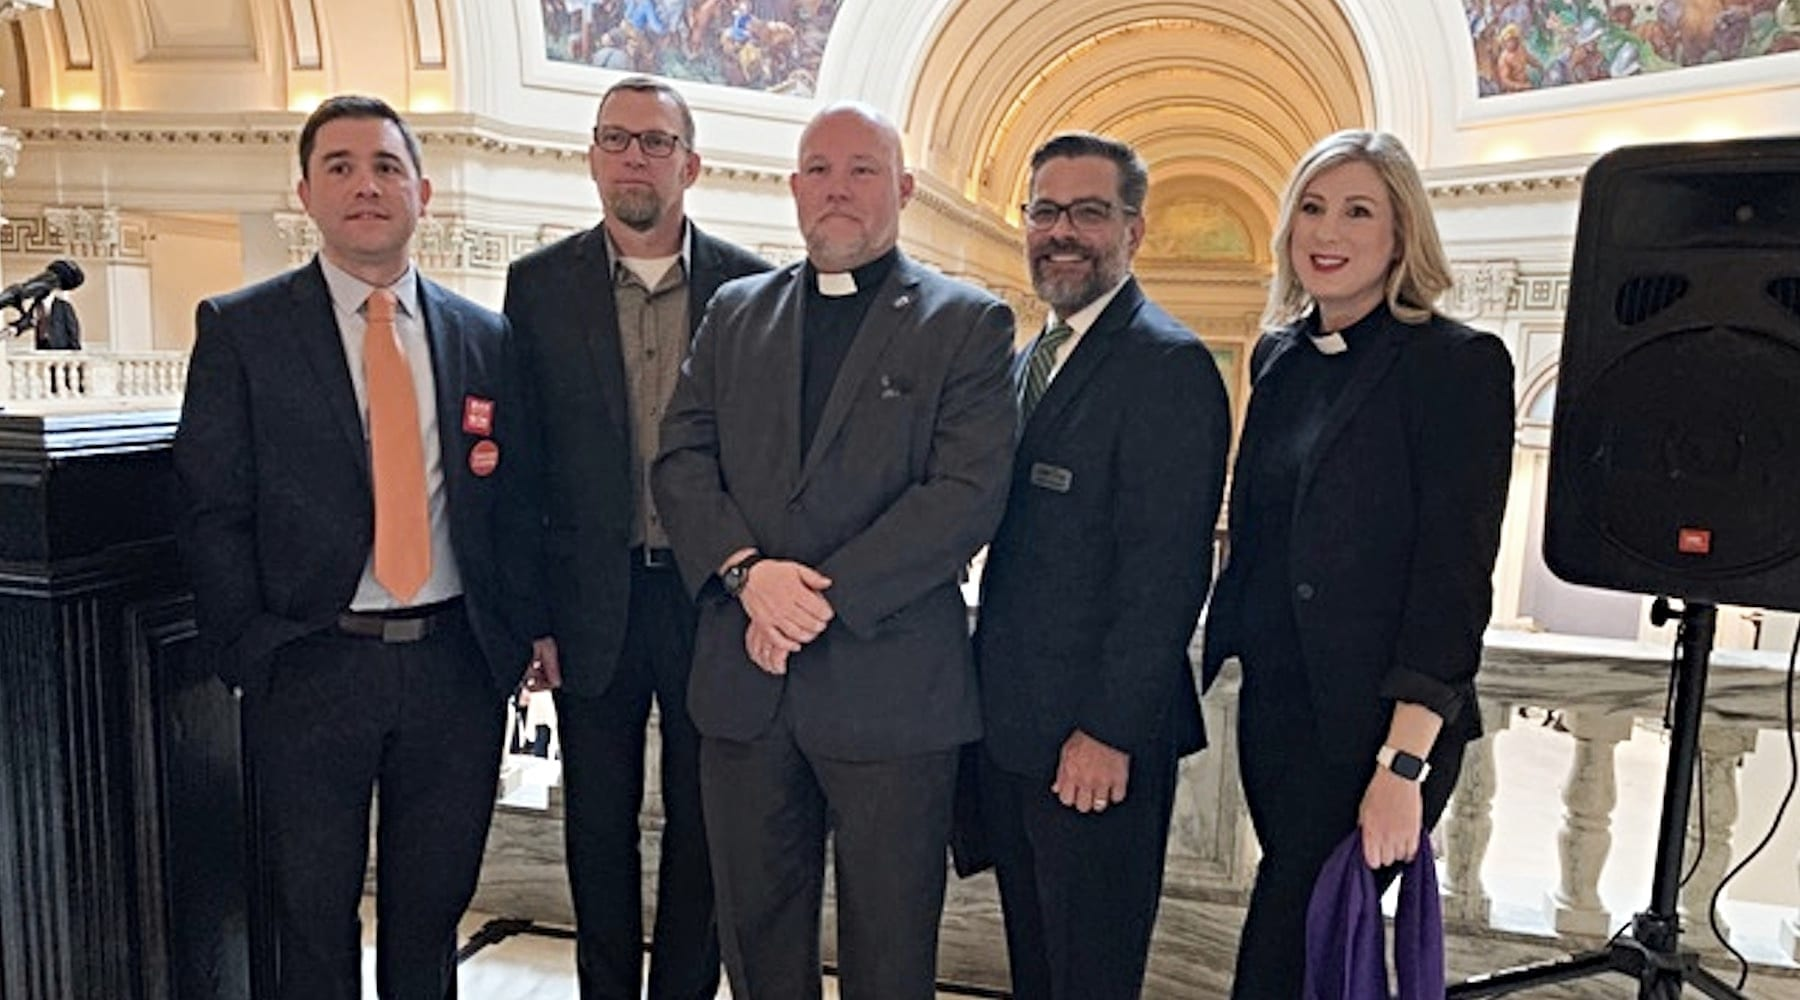 From left, Rev. Tim Blogget, Southminster Presbyterian Church, Tulsa, Oklahoma; Rev. Todd Littleton, Snow Hill Baptist Church, Tuttle, Oklahoma; Rev. Chris Moore, Fellowship Congregational Church, Tulsa; Mitch Randall; Rev. Shannon Fleck, executive director, Oklahoma Conference of Churches at a Feb. 21 faith rally at the Oklahoma Capitol to oppose a permitless carry bill.